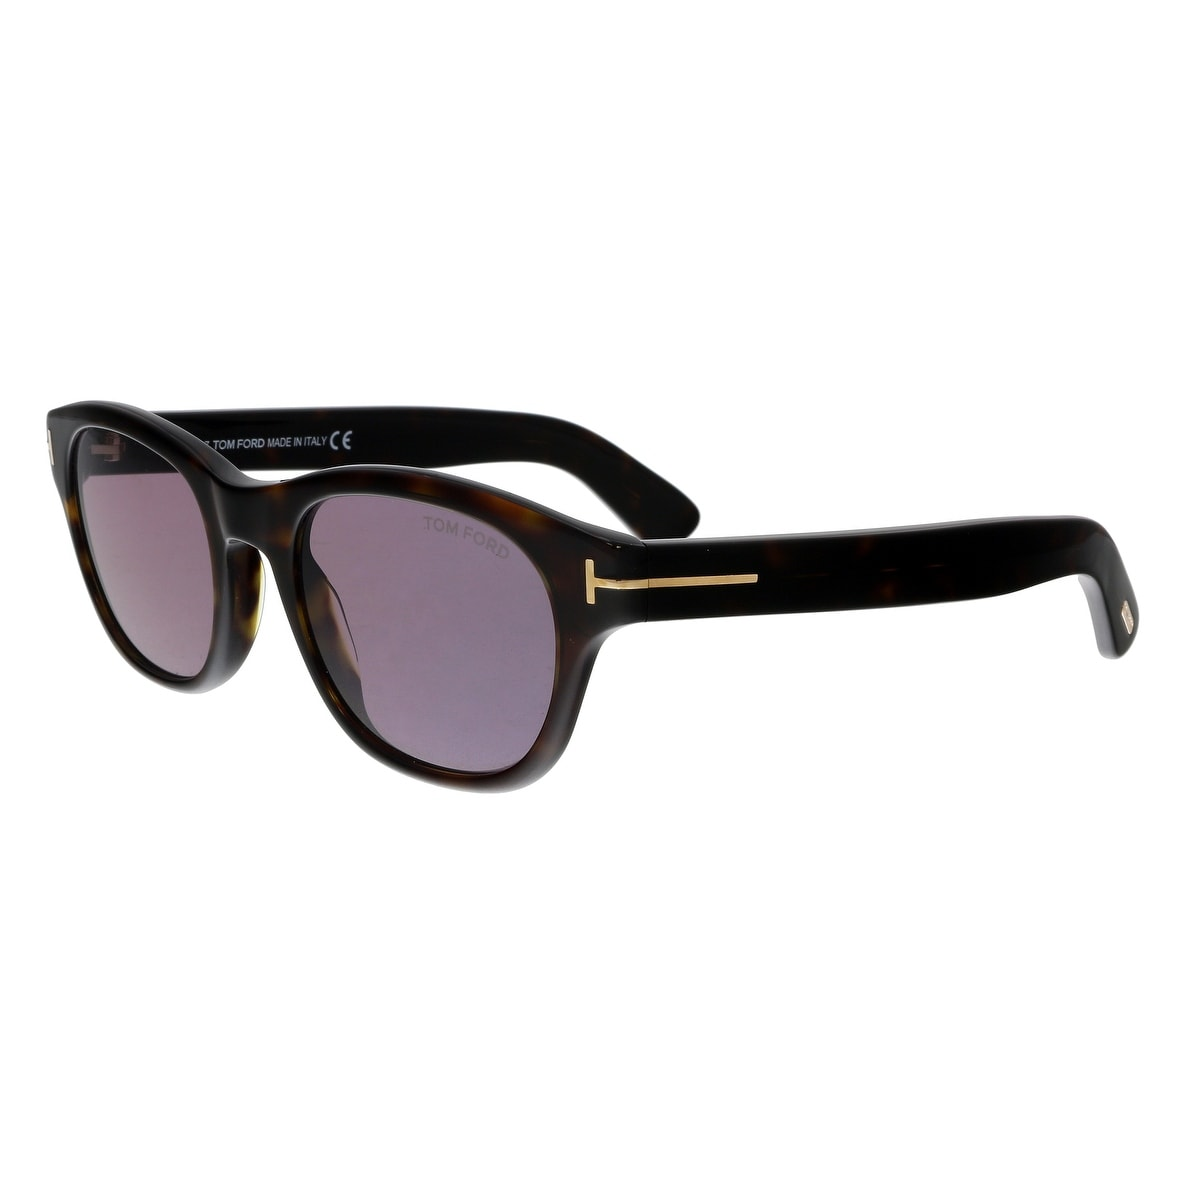 25e2cd845986 Tom Ford Men s Sunglasses